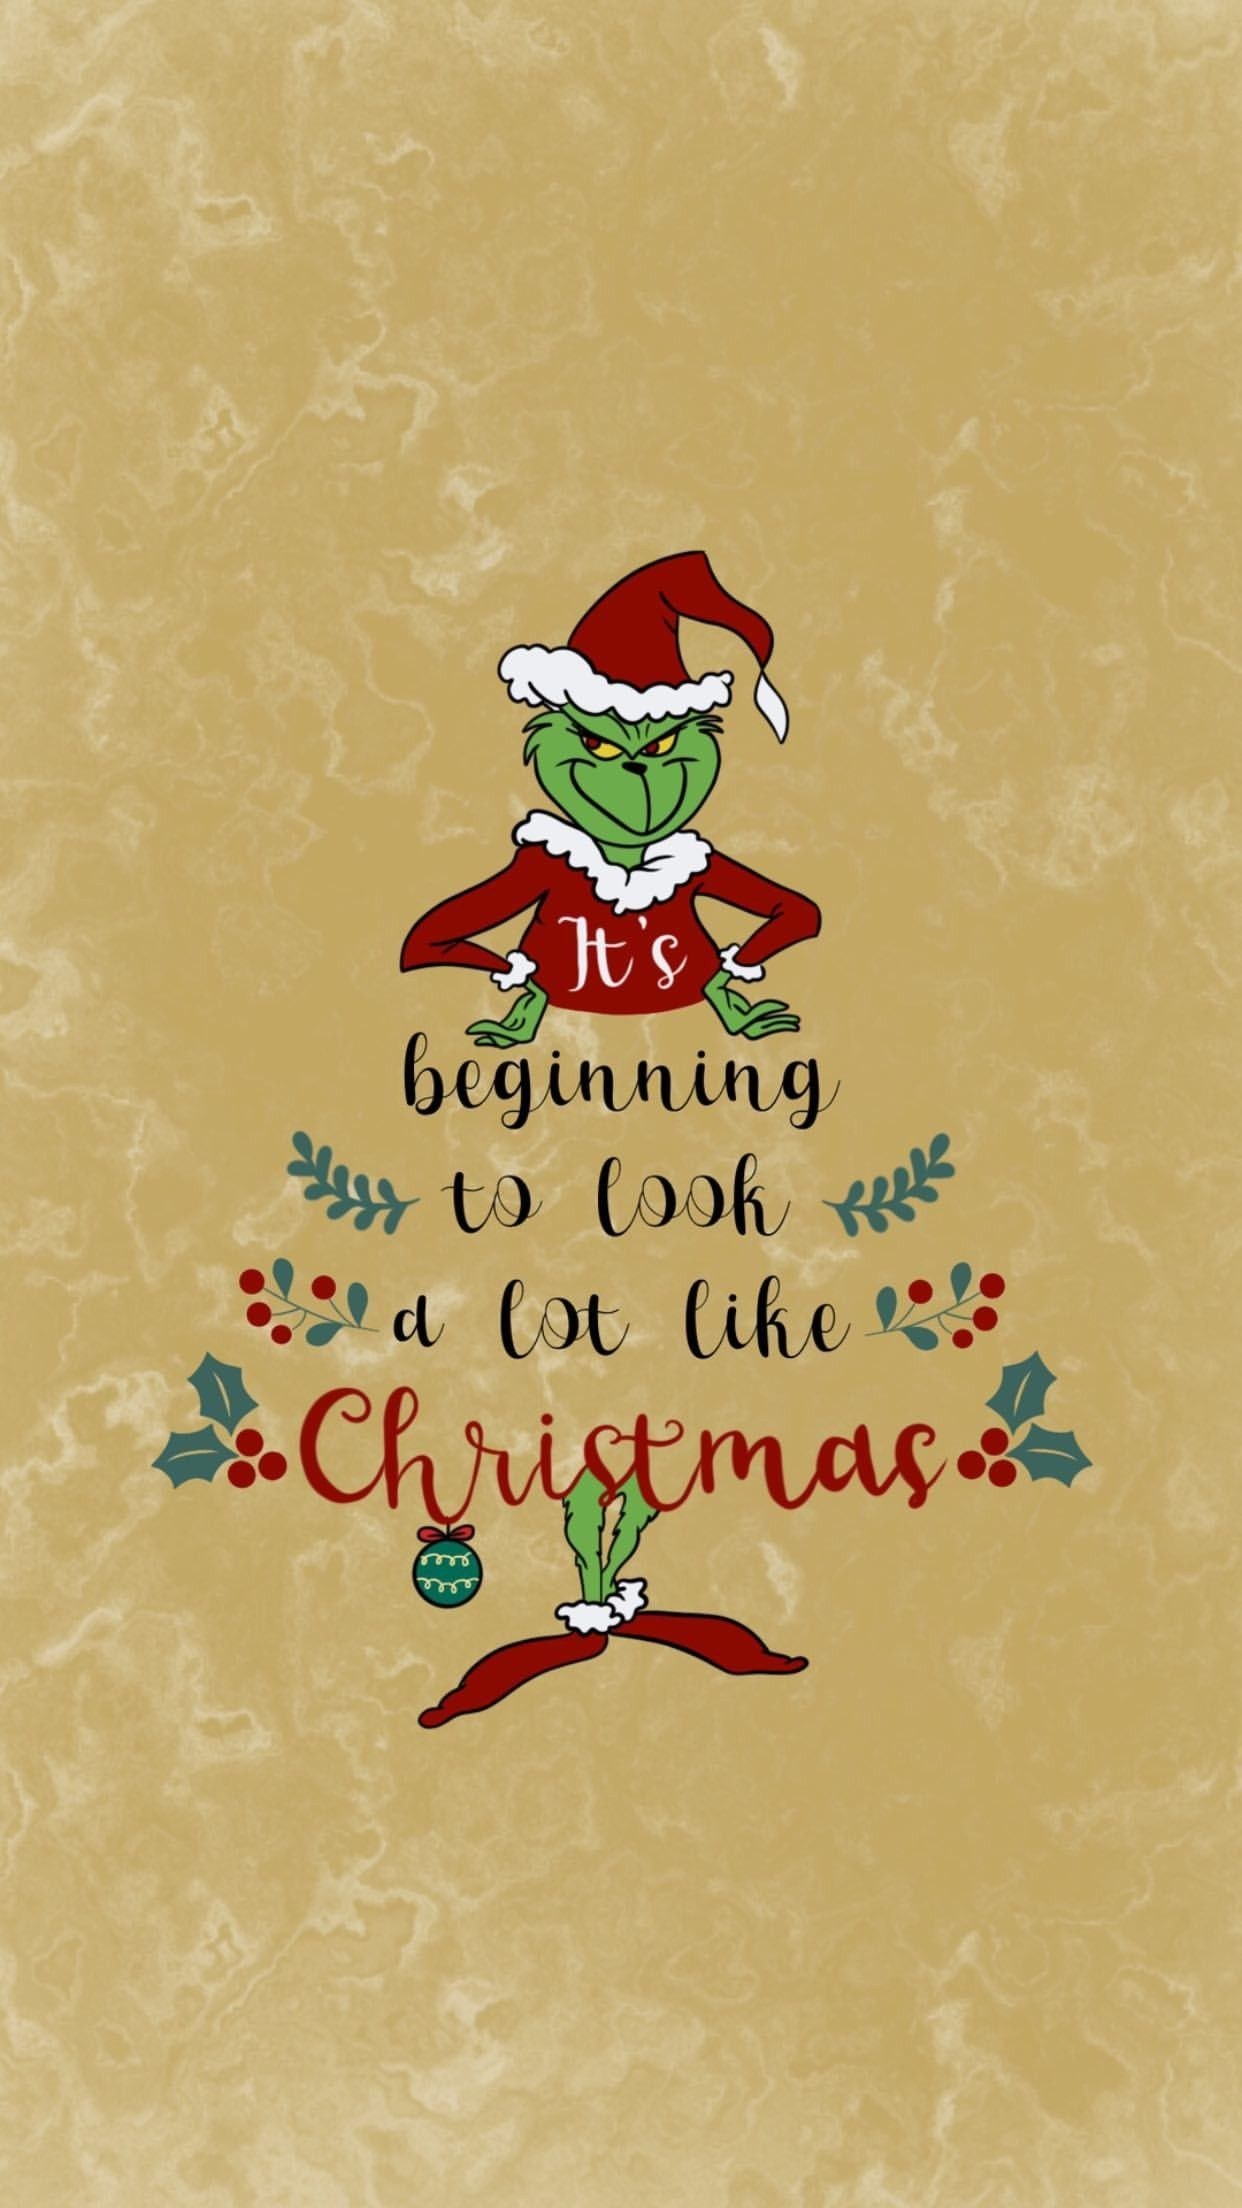 It S Beginning To Look A Lot Like Christmas Tiktok Wallpaper Funny Christmas Wallpaper Christmas Phone Wallpaper Wallpaper Iphone Christmas